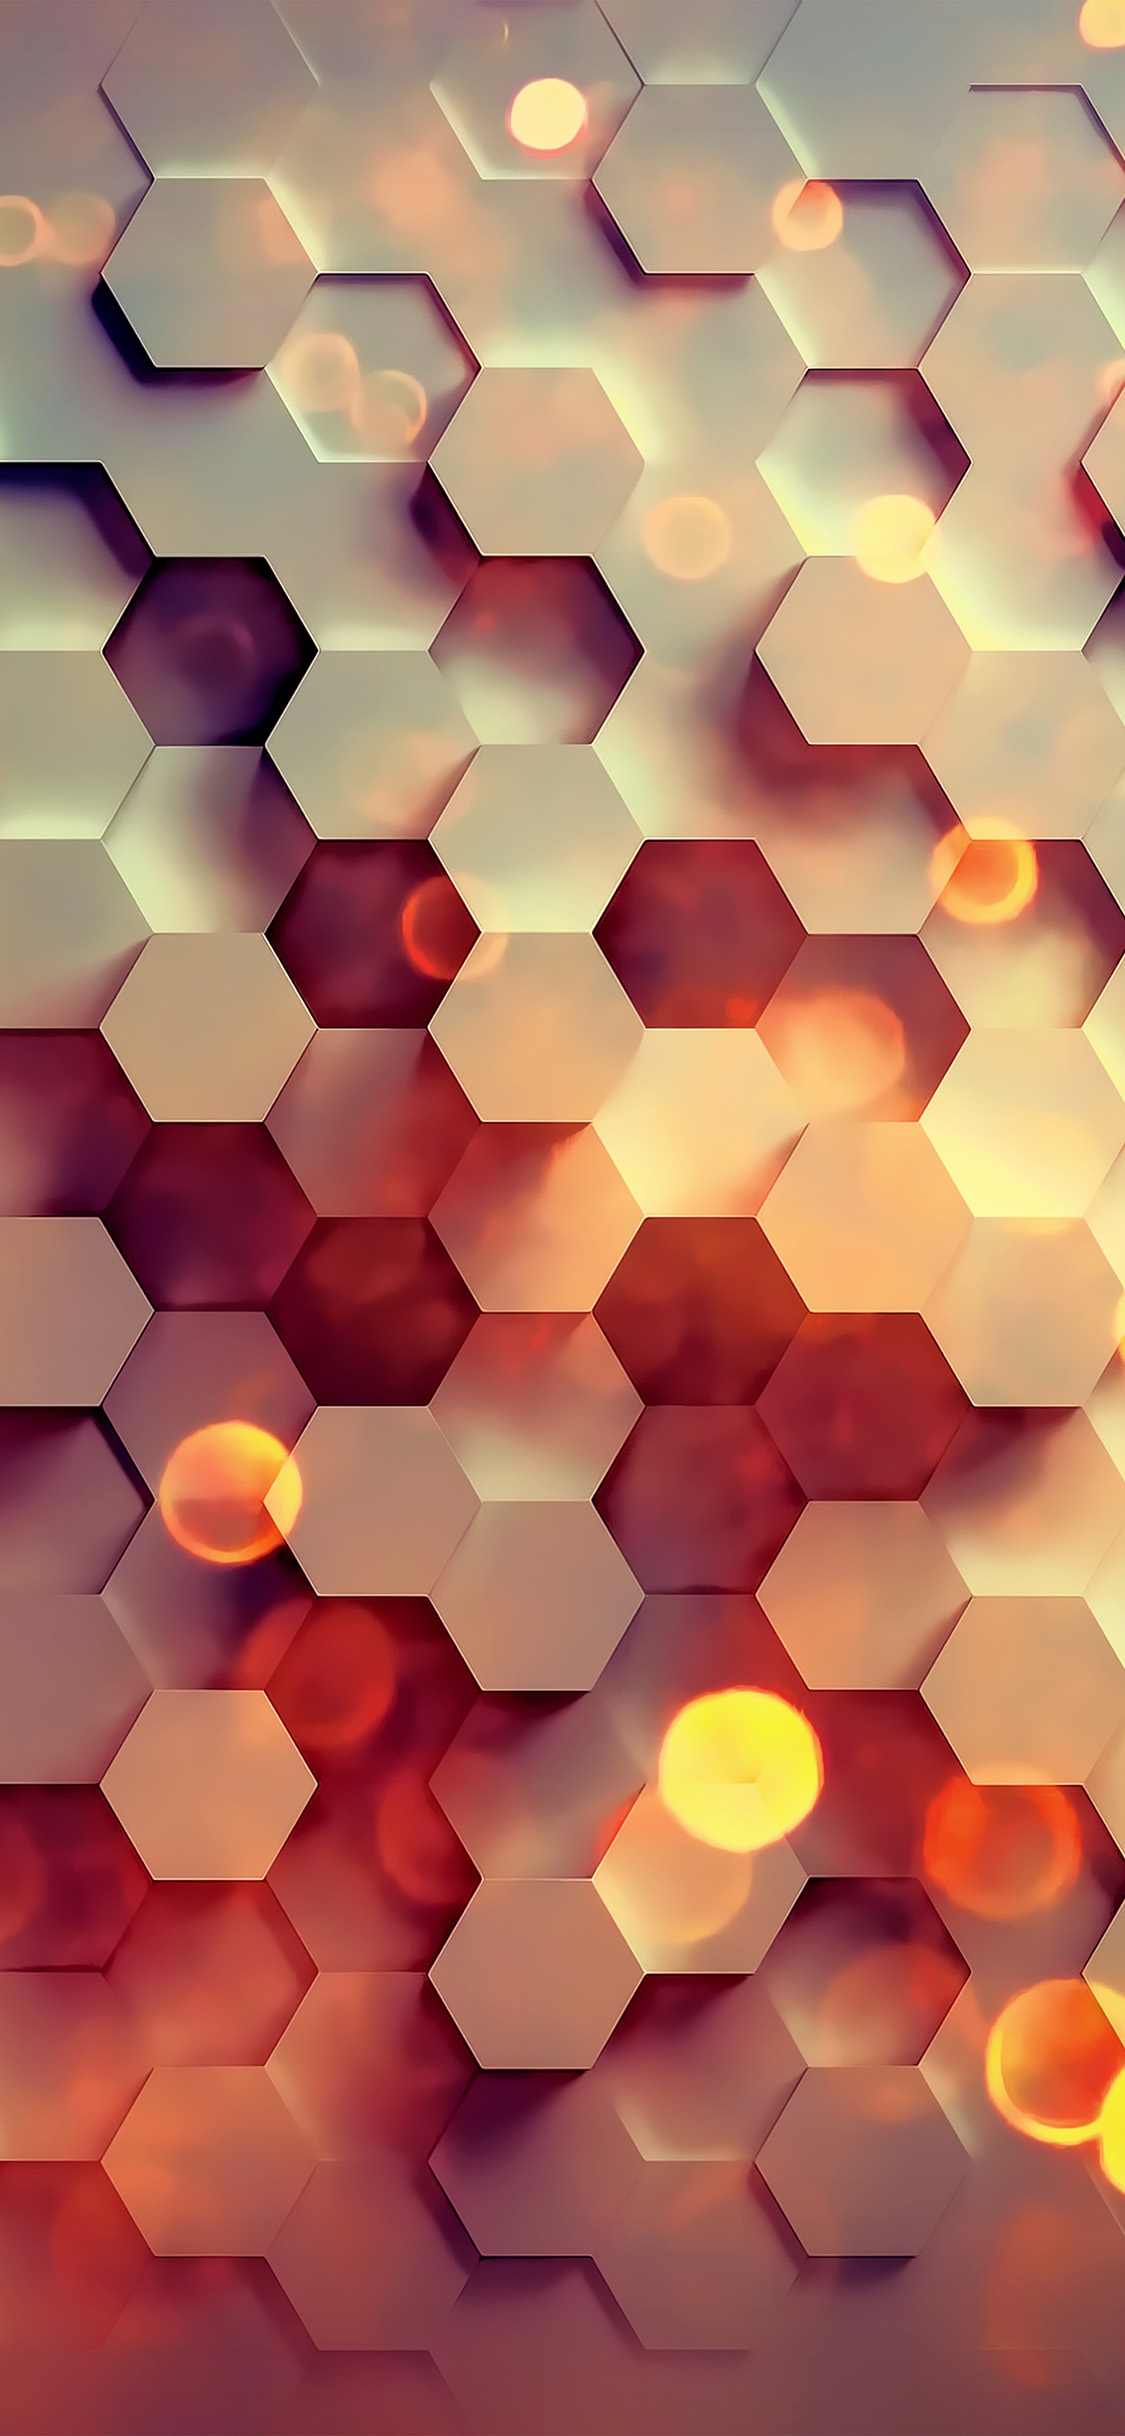 Simple Hd Wallpapers Iphone Vy40 Honey Hexagon Digital Abstract Pattern Background